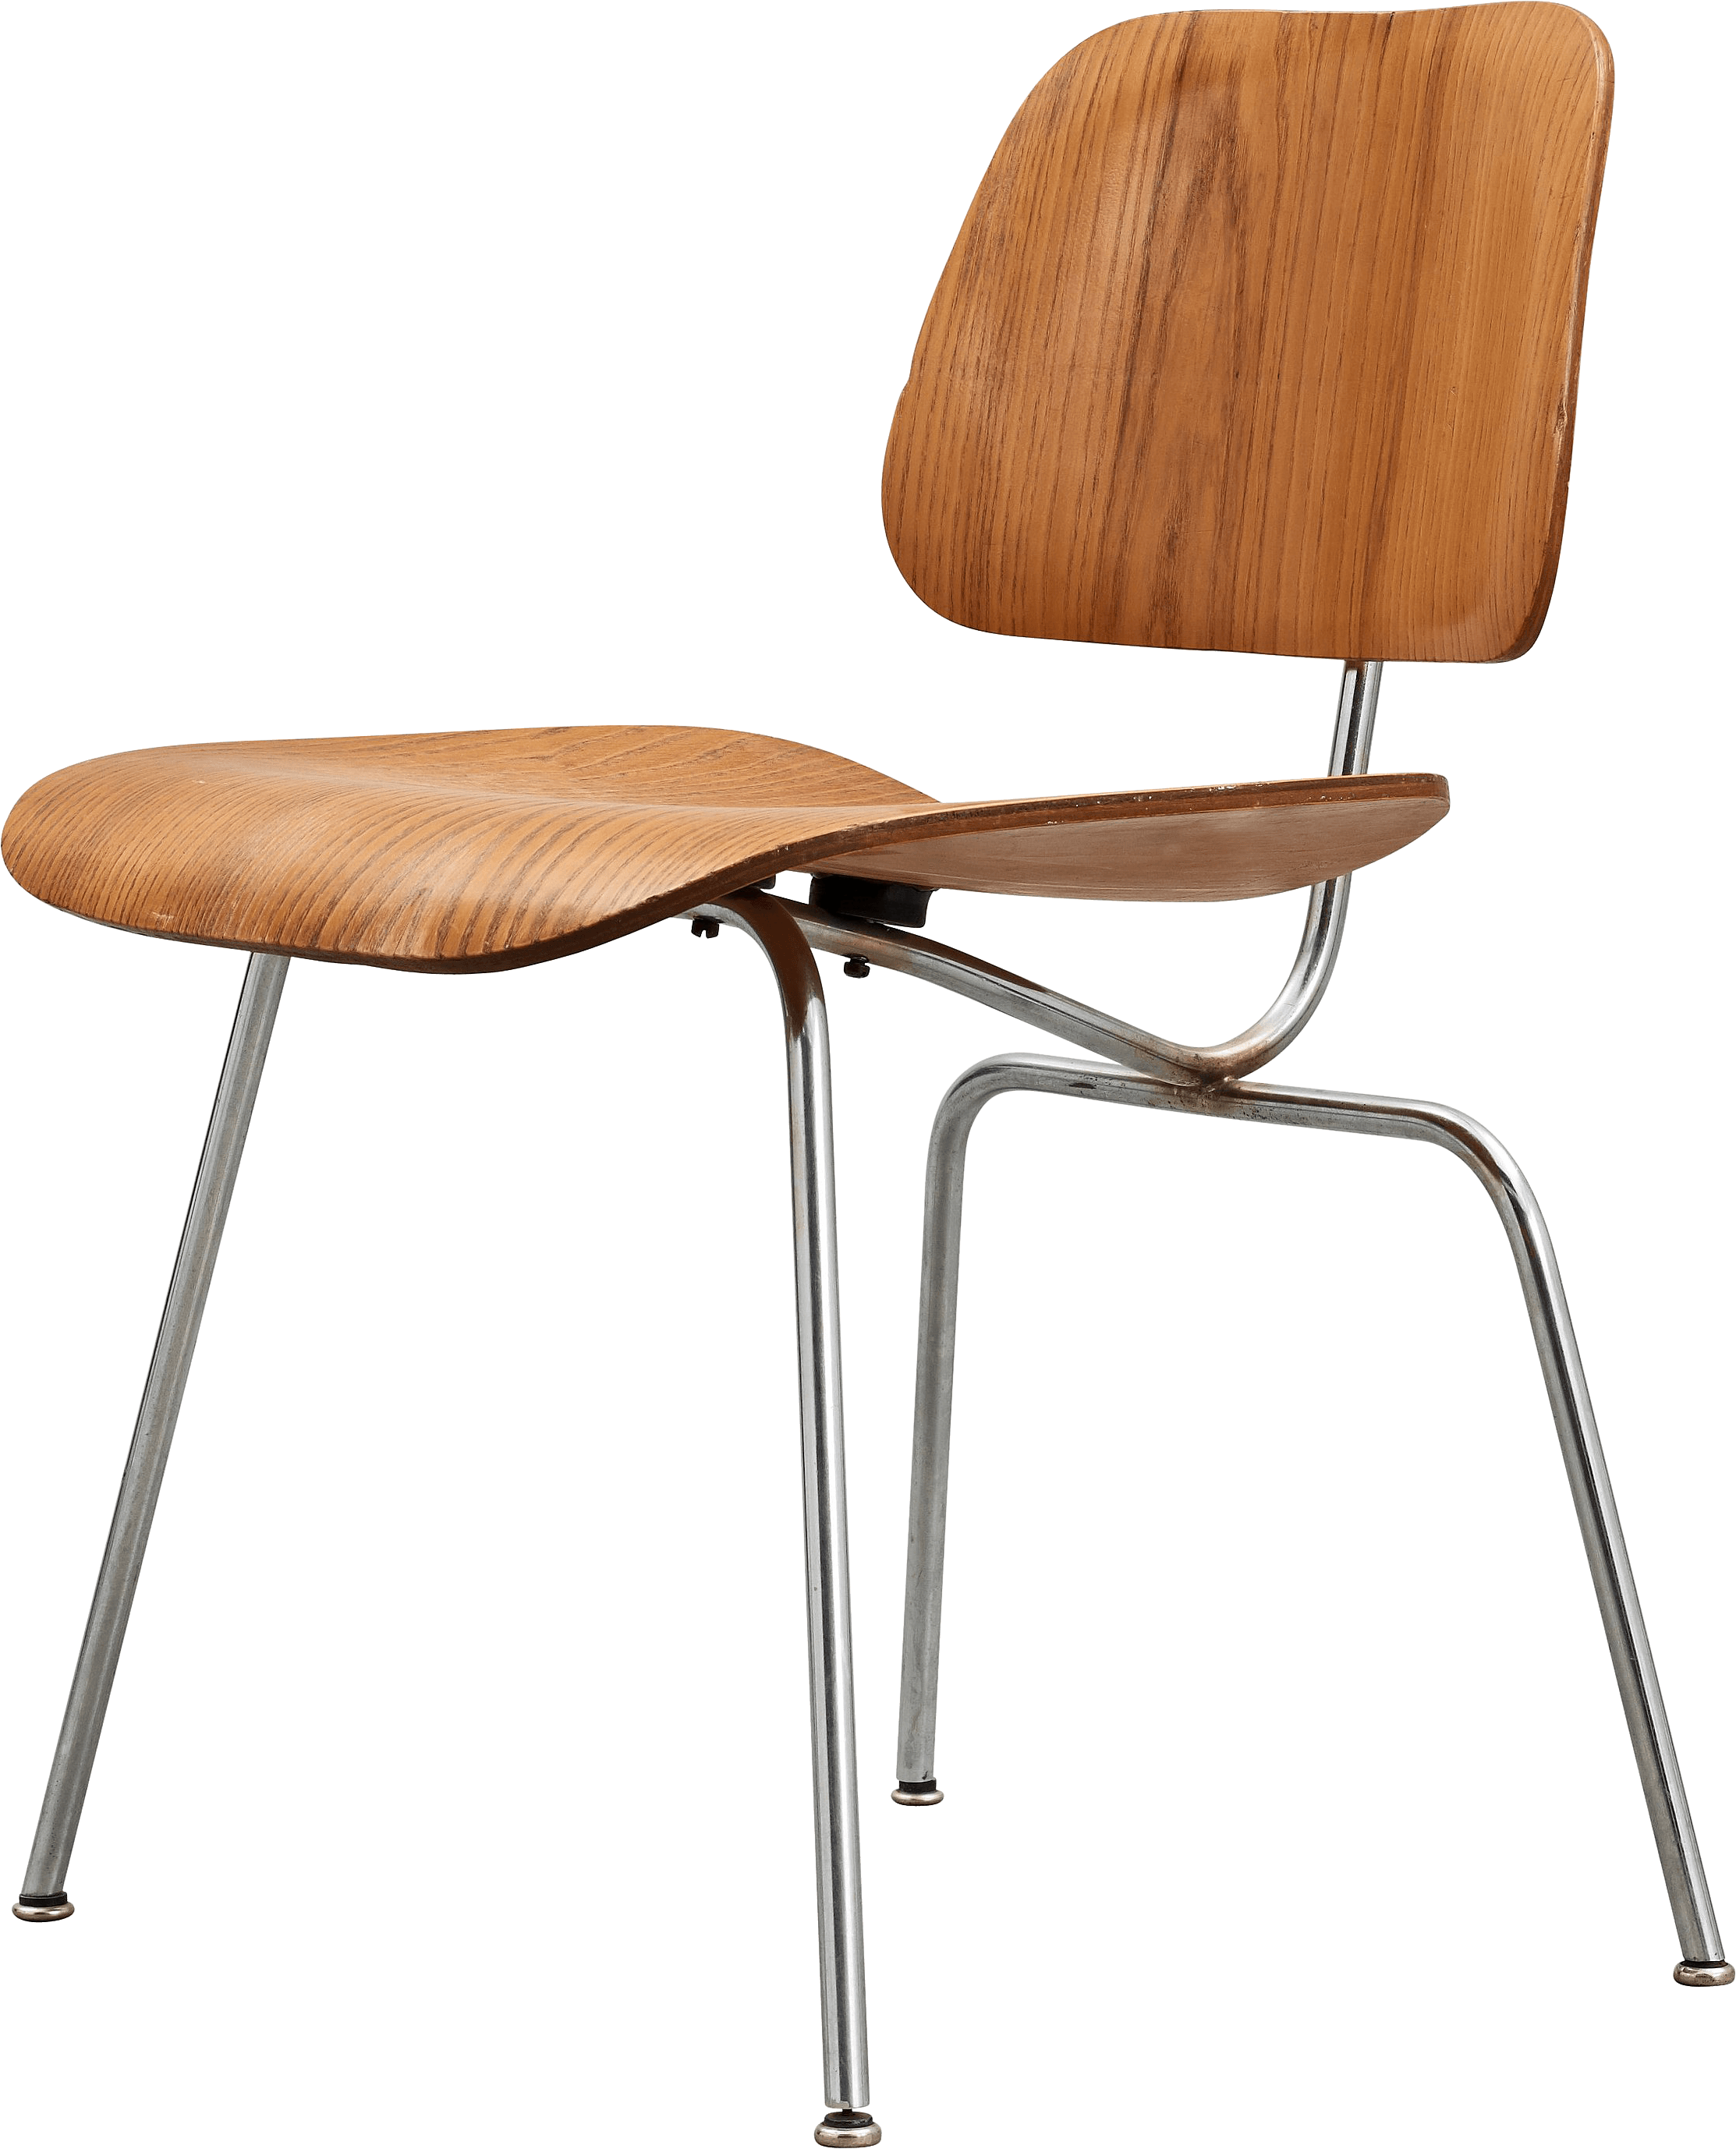 Chair PNG - 3217